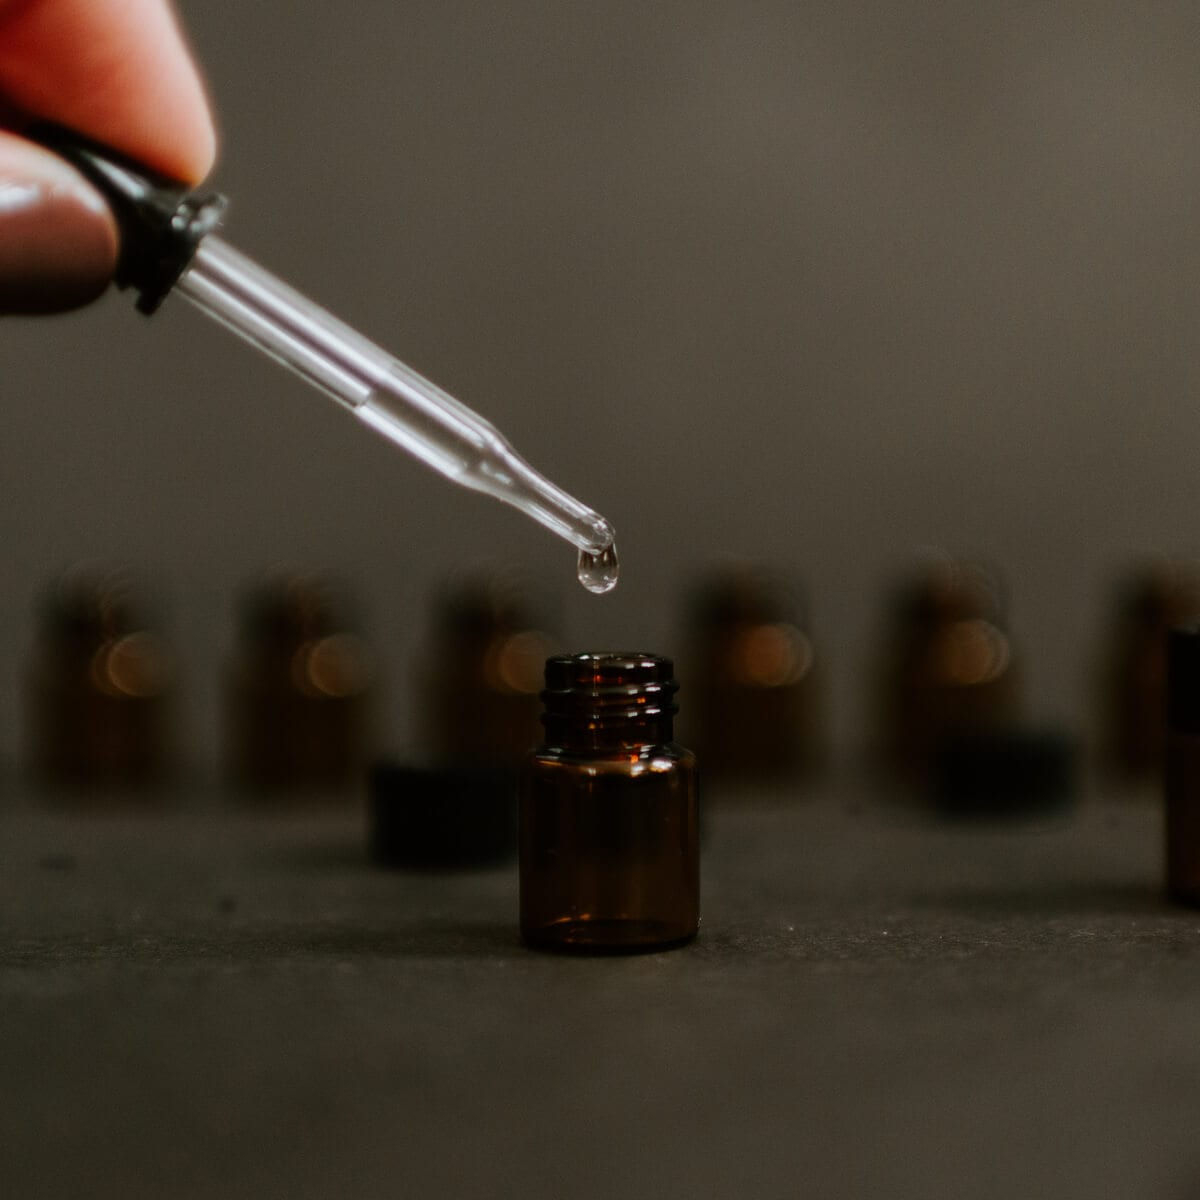 essential oil dropper and bottle